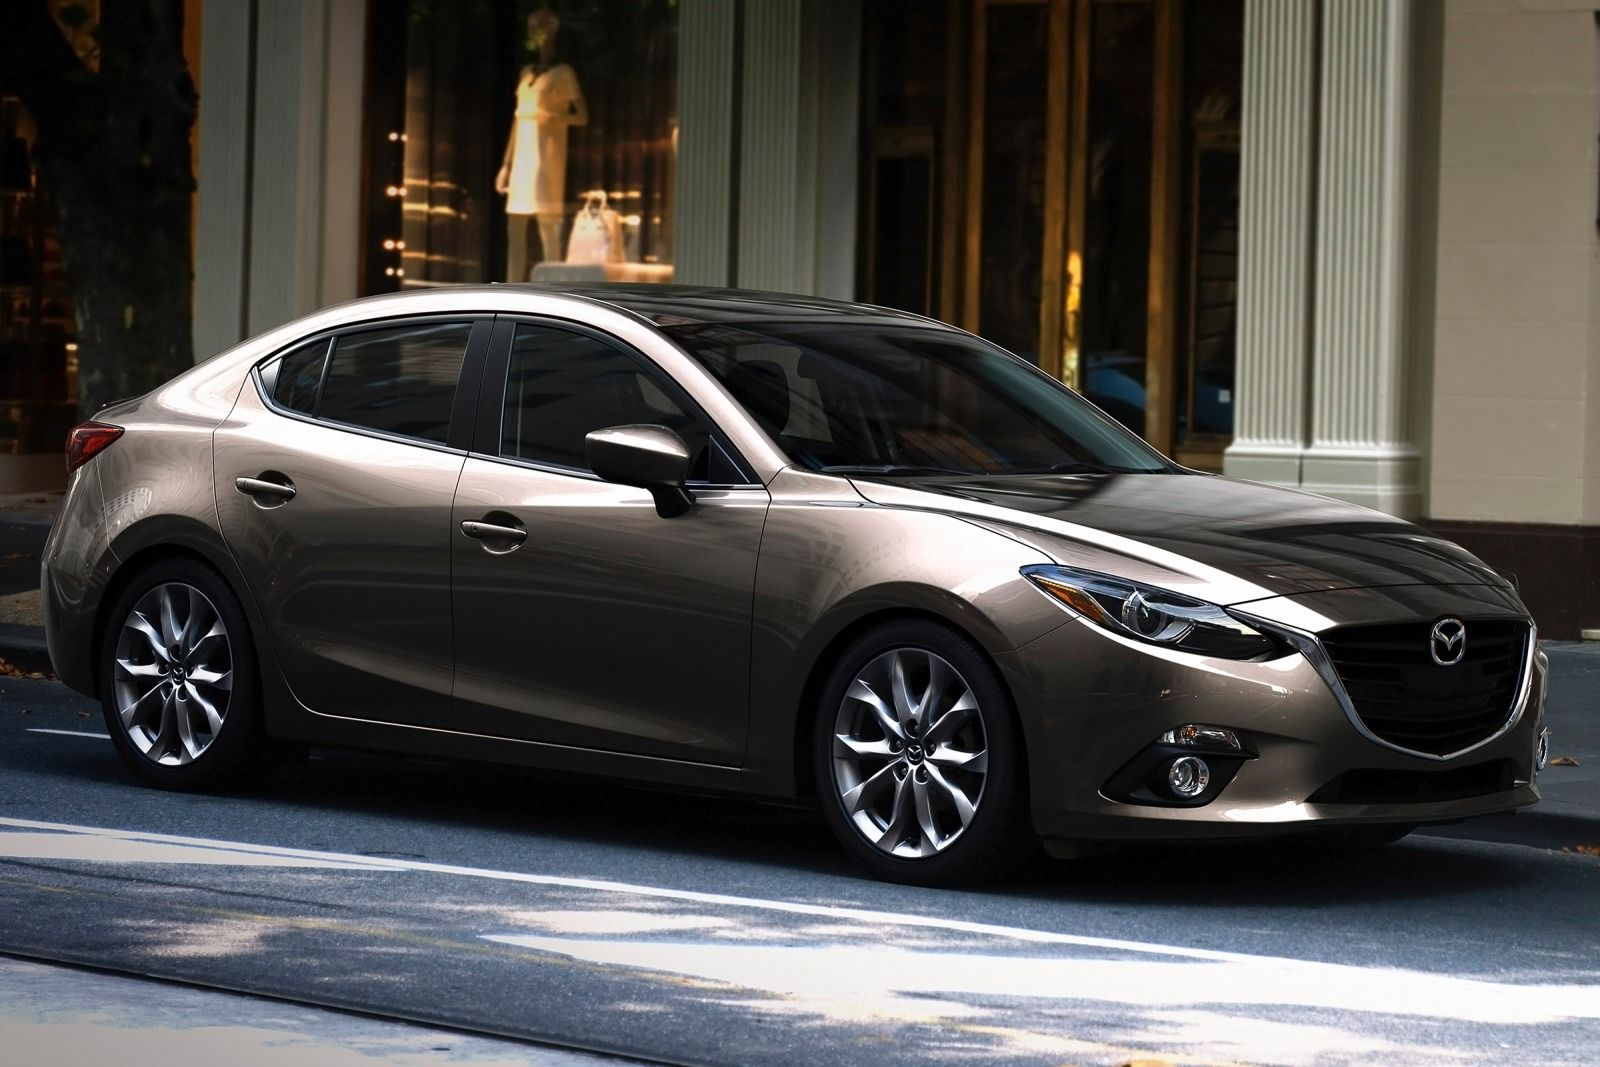 new 2015 mazda 3 hatchback #5604 | cars performance, reviews, and